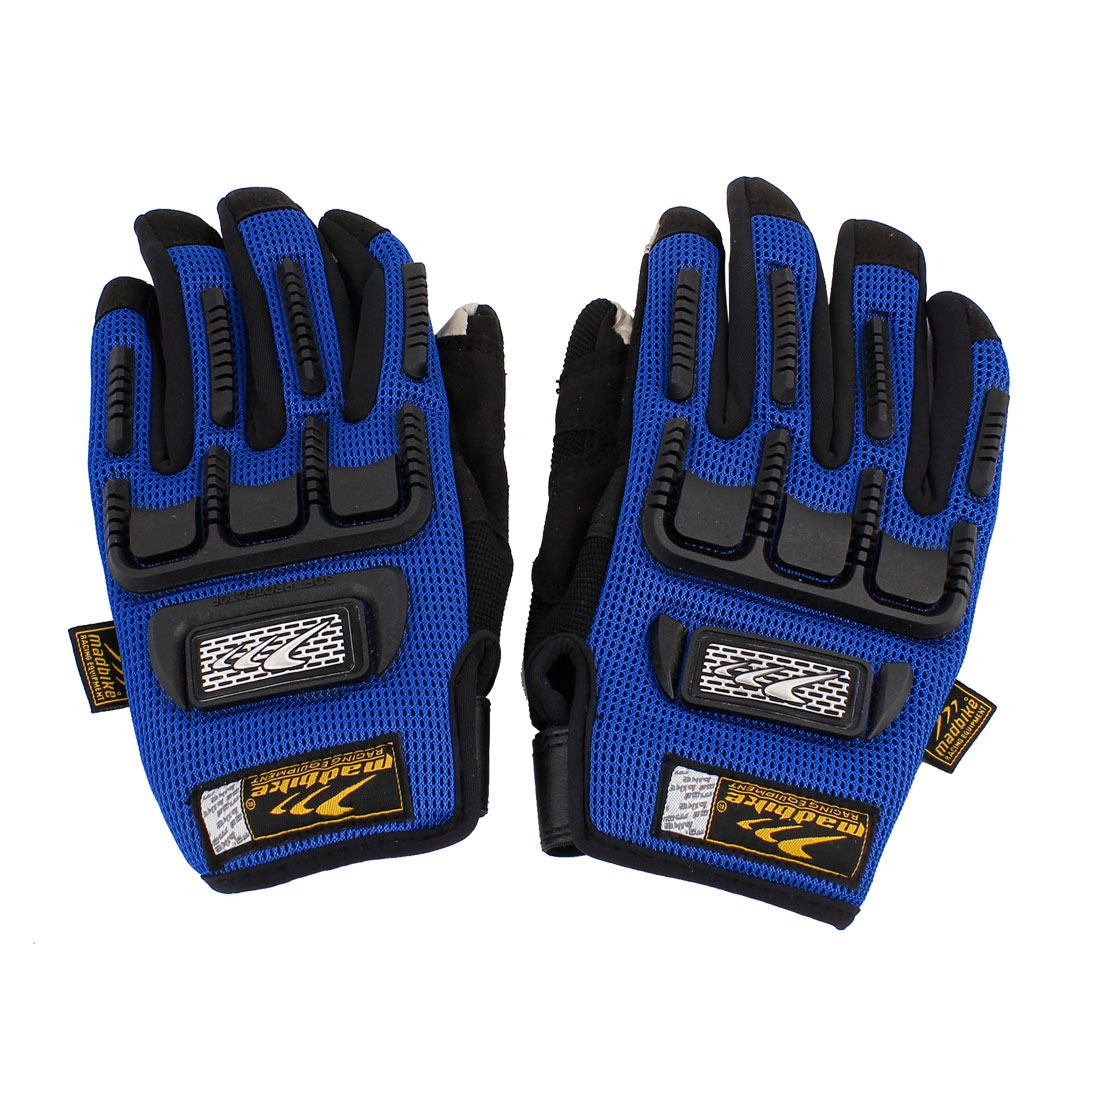 2 Pcs Unisex Bike Sport Cycling Motorcycle Full Finger Gloves Black Blue L